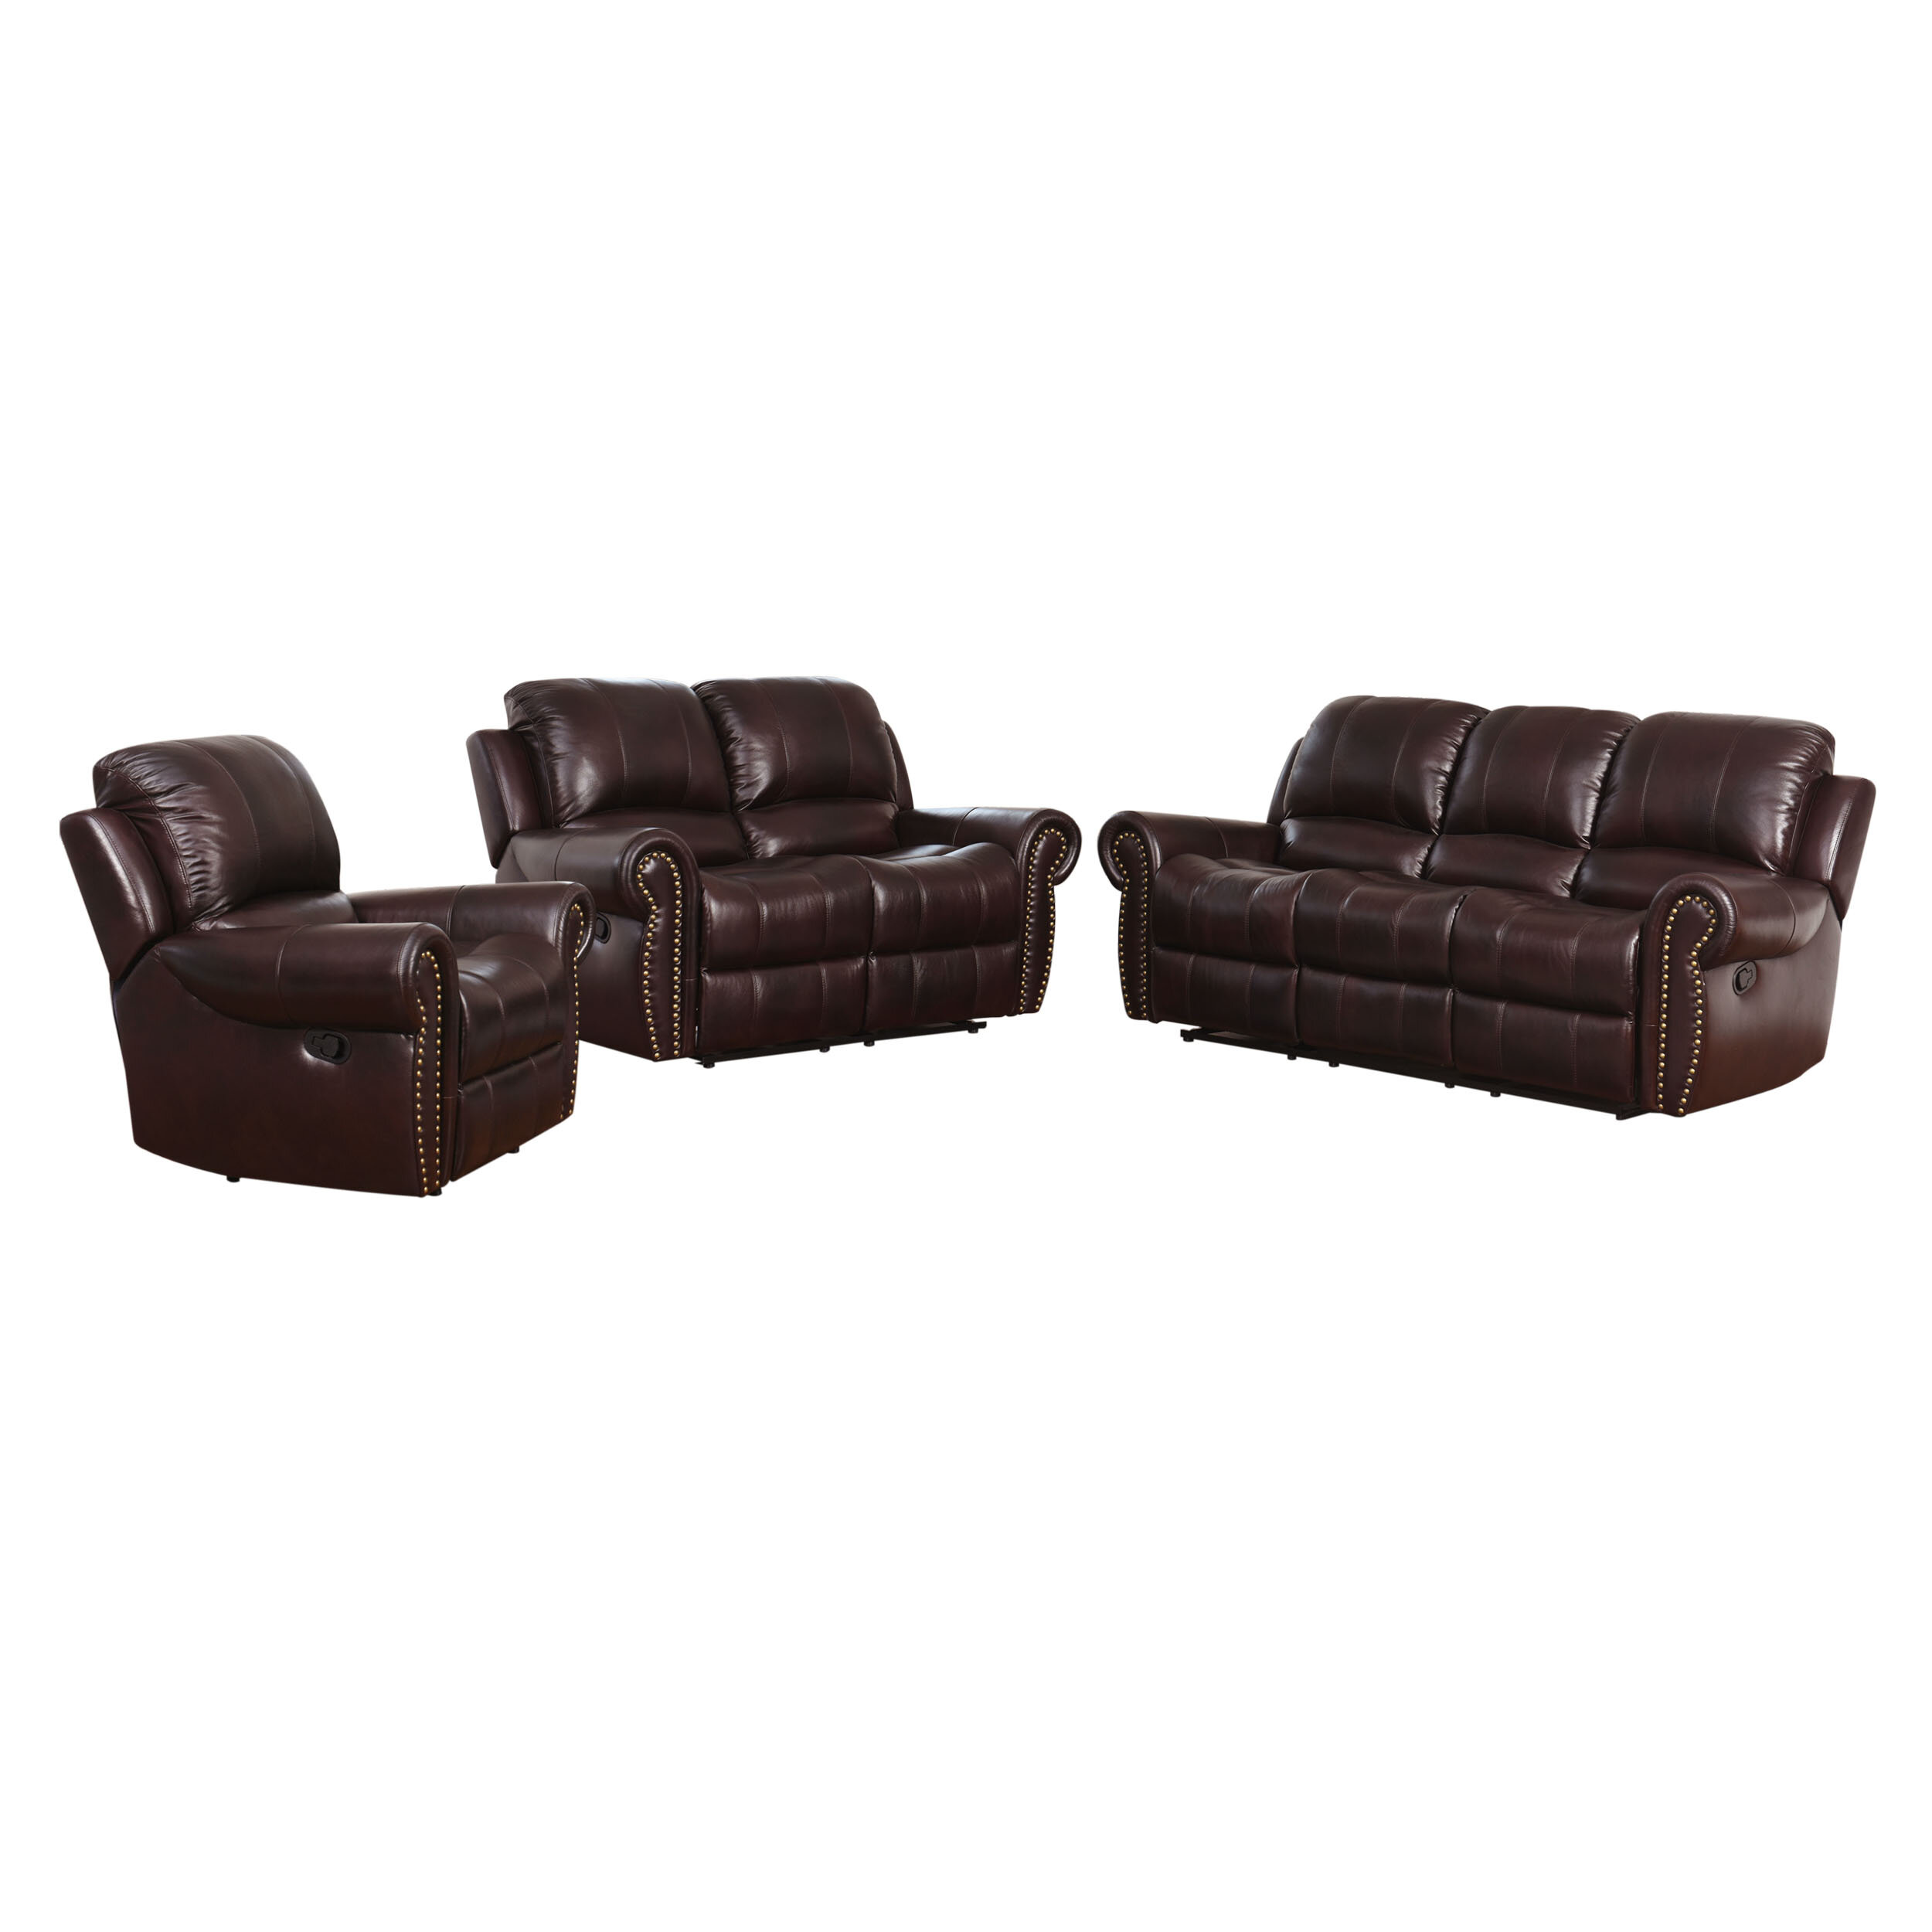 Darby home co barnsdale reclining 3 piece leather reclining living room set reviews wayfair